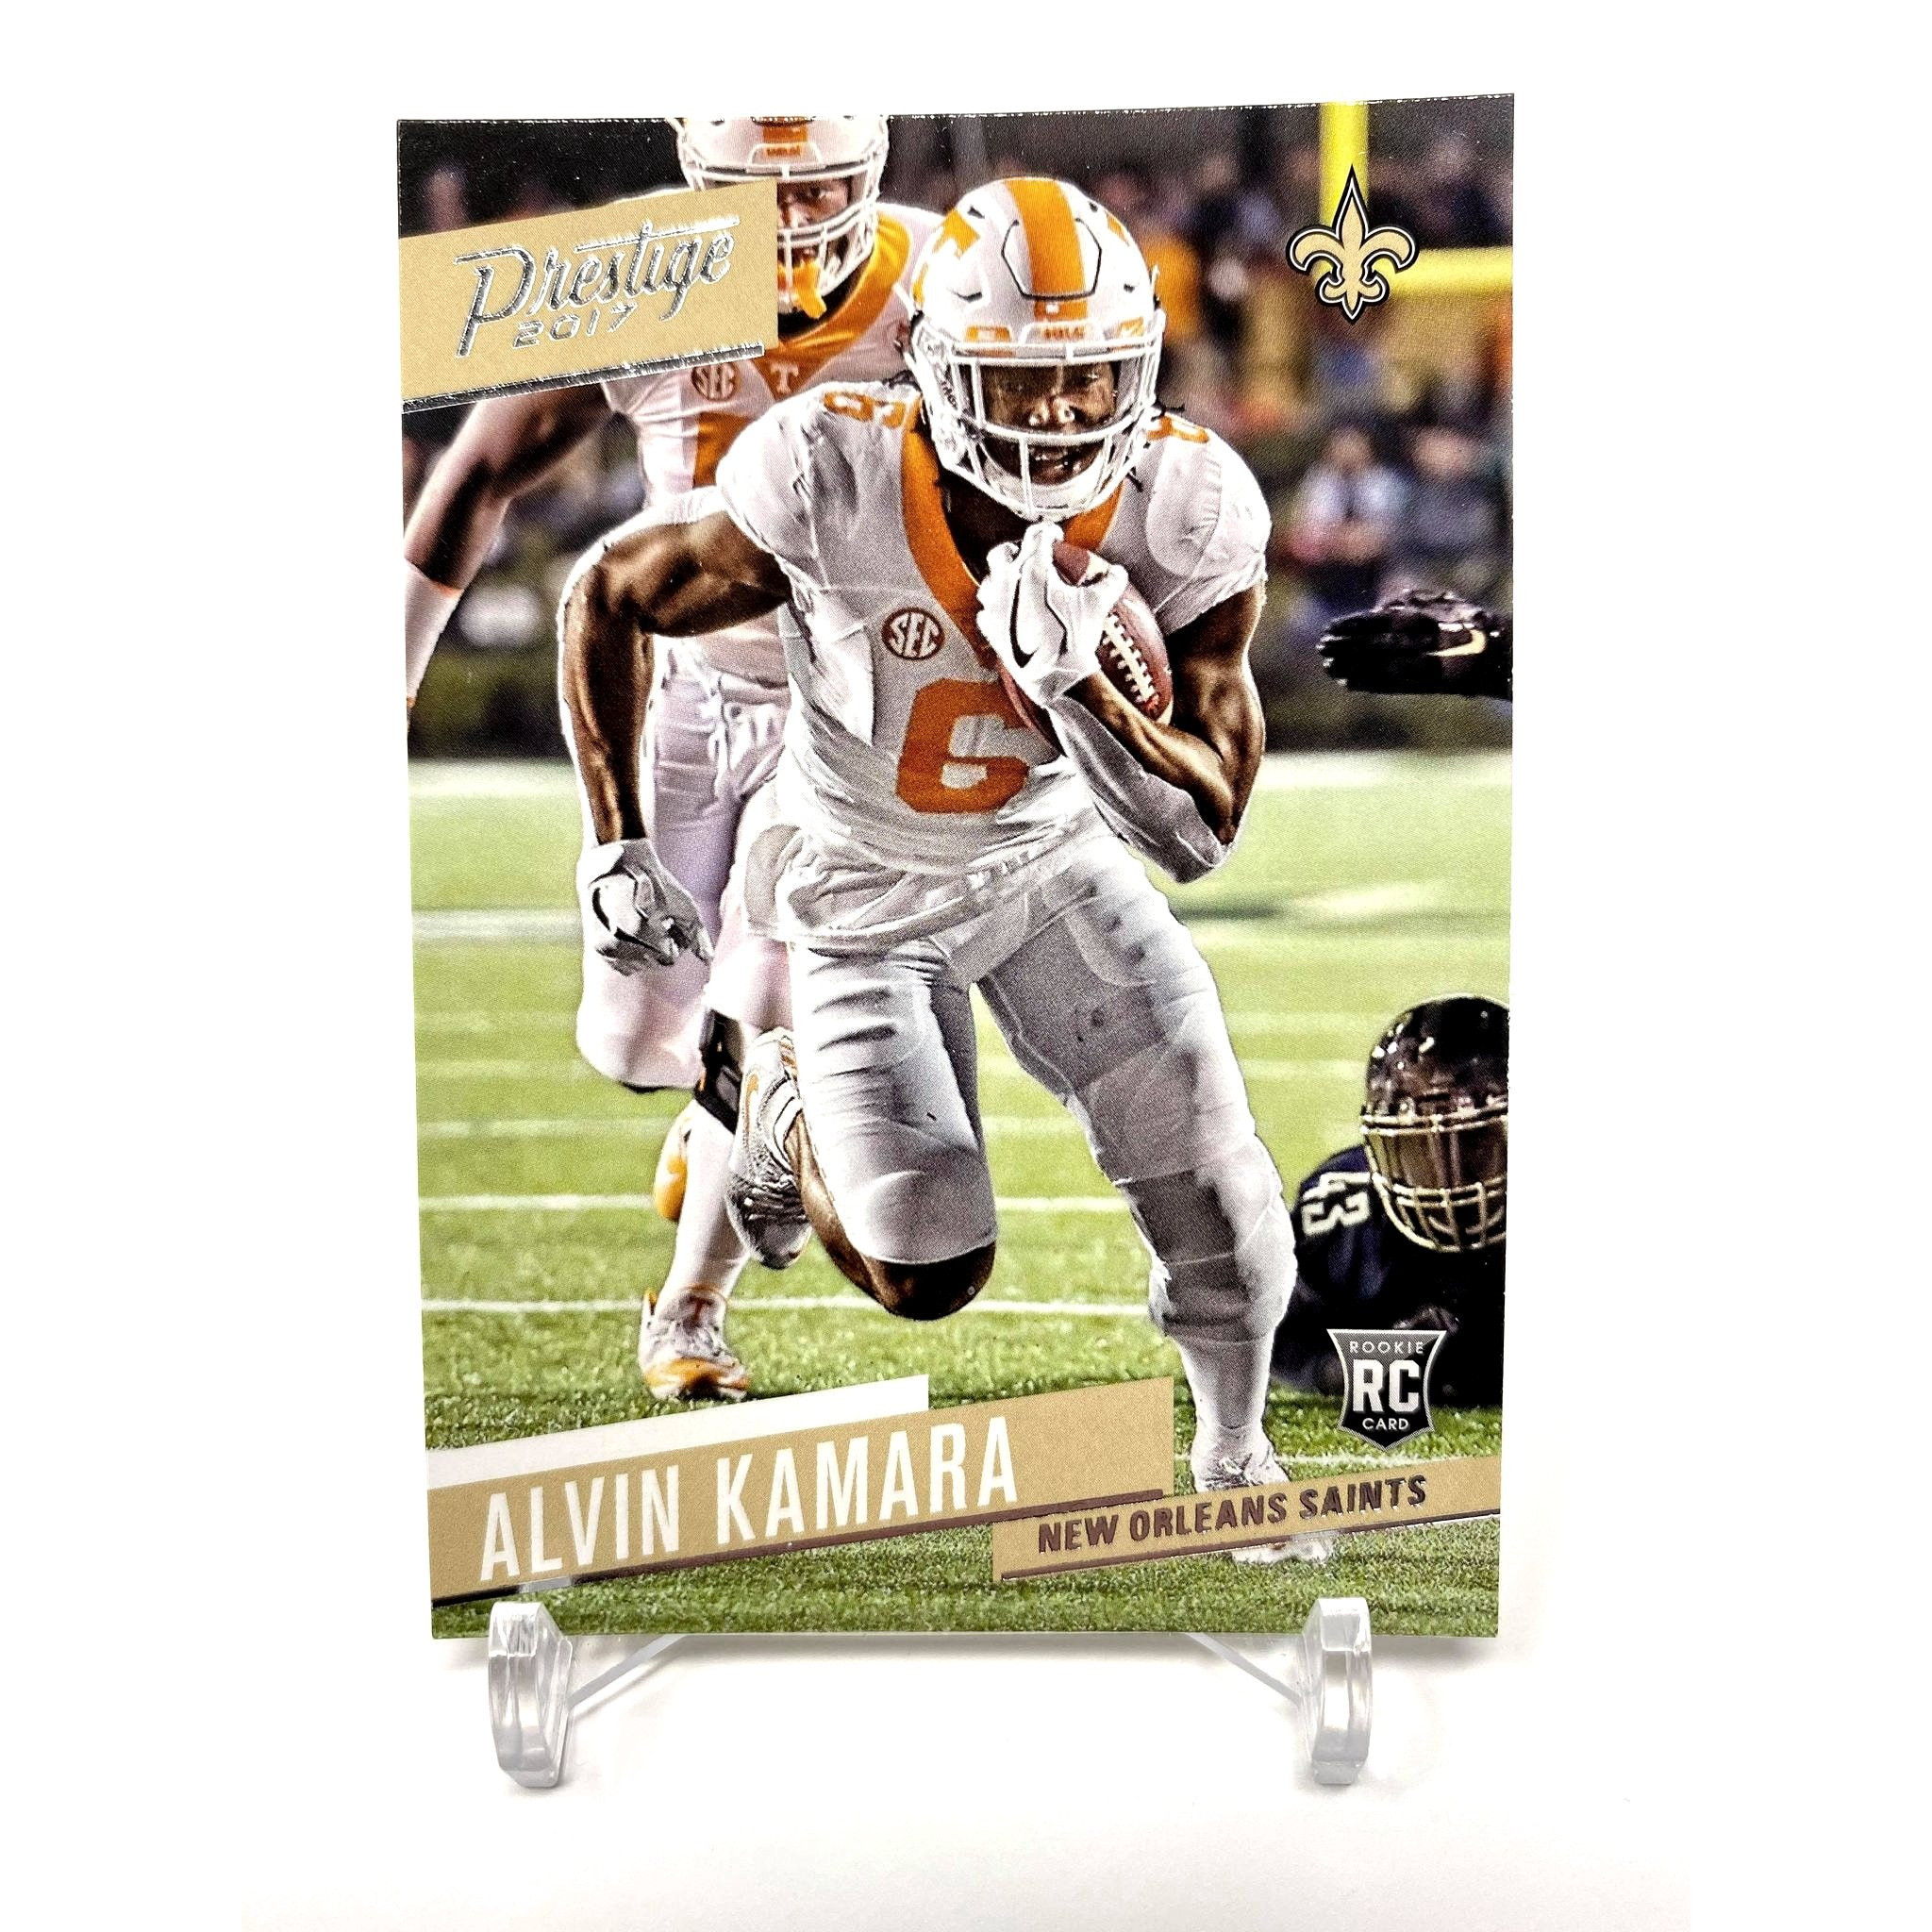 2017 Panini Prestige Alvin Kamara Rookie Card New Orleans Saints